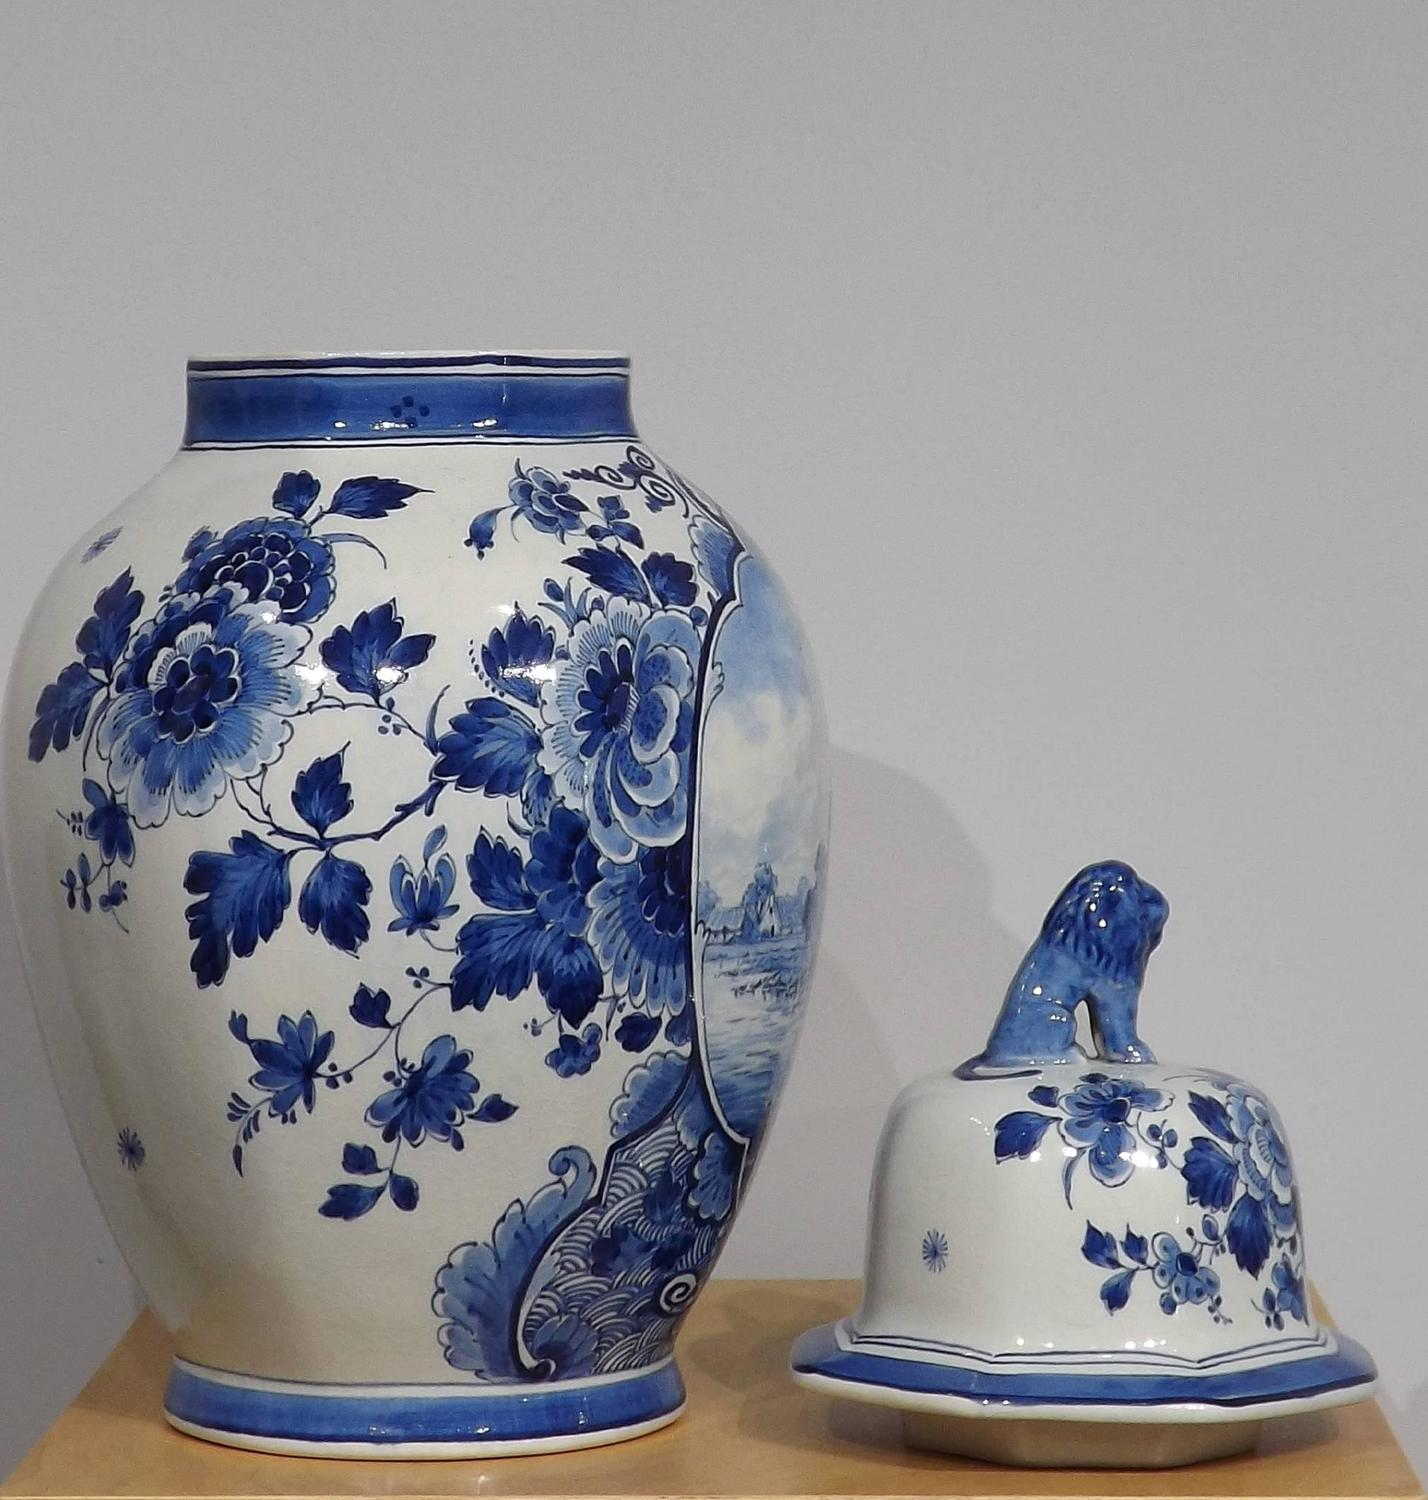 dating royal delft How to identify delft pottery makers' marks and appraise ancient or recent deft-ware learn how to authenticate delft marks or initials to determine their true age and worth.